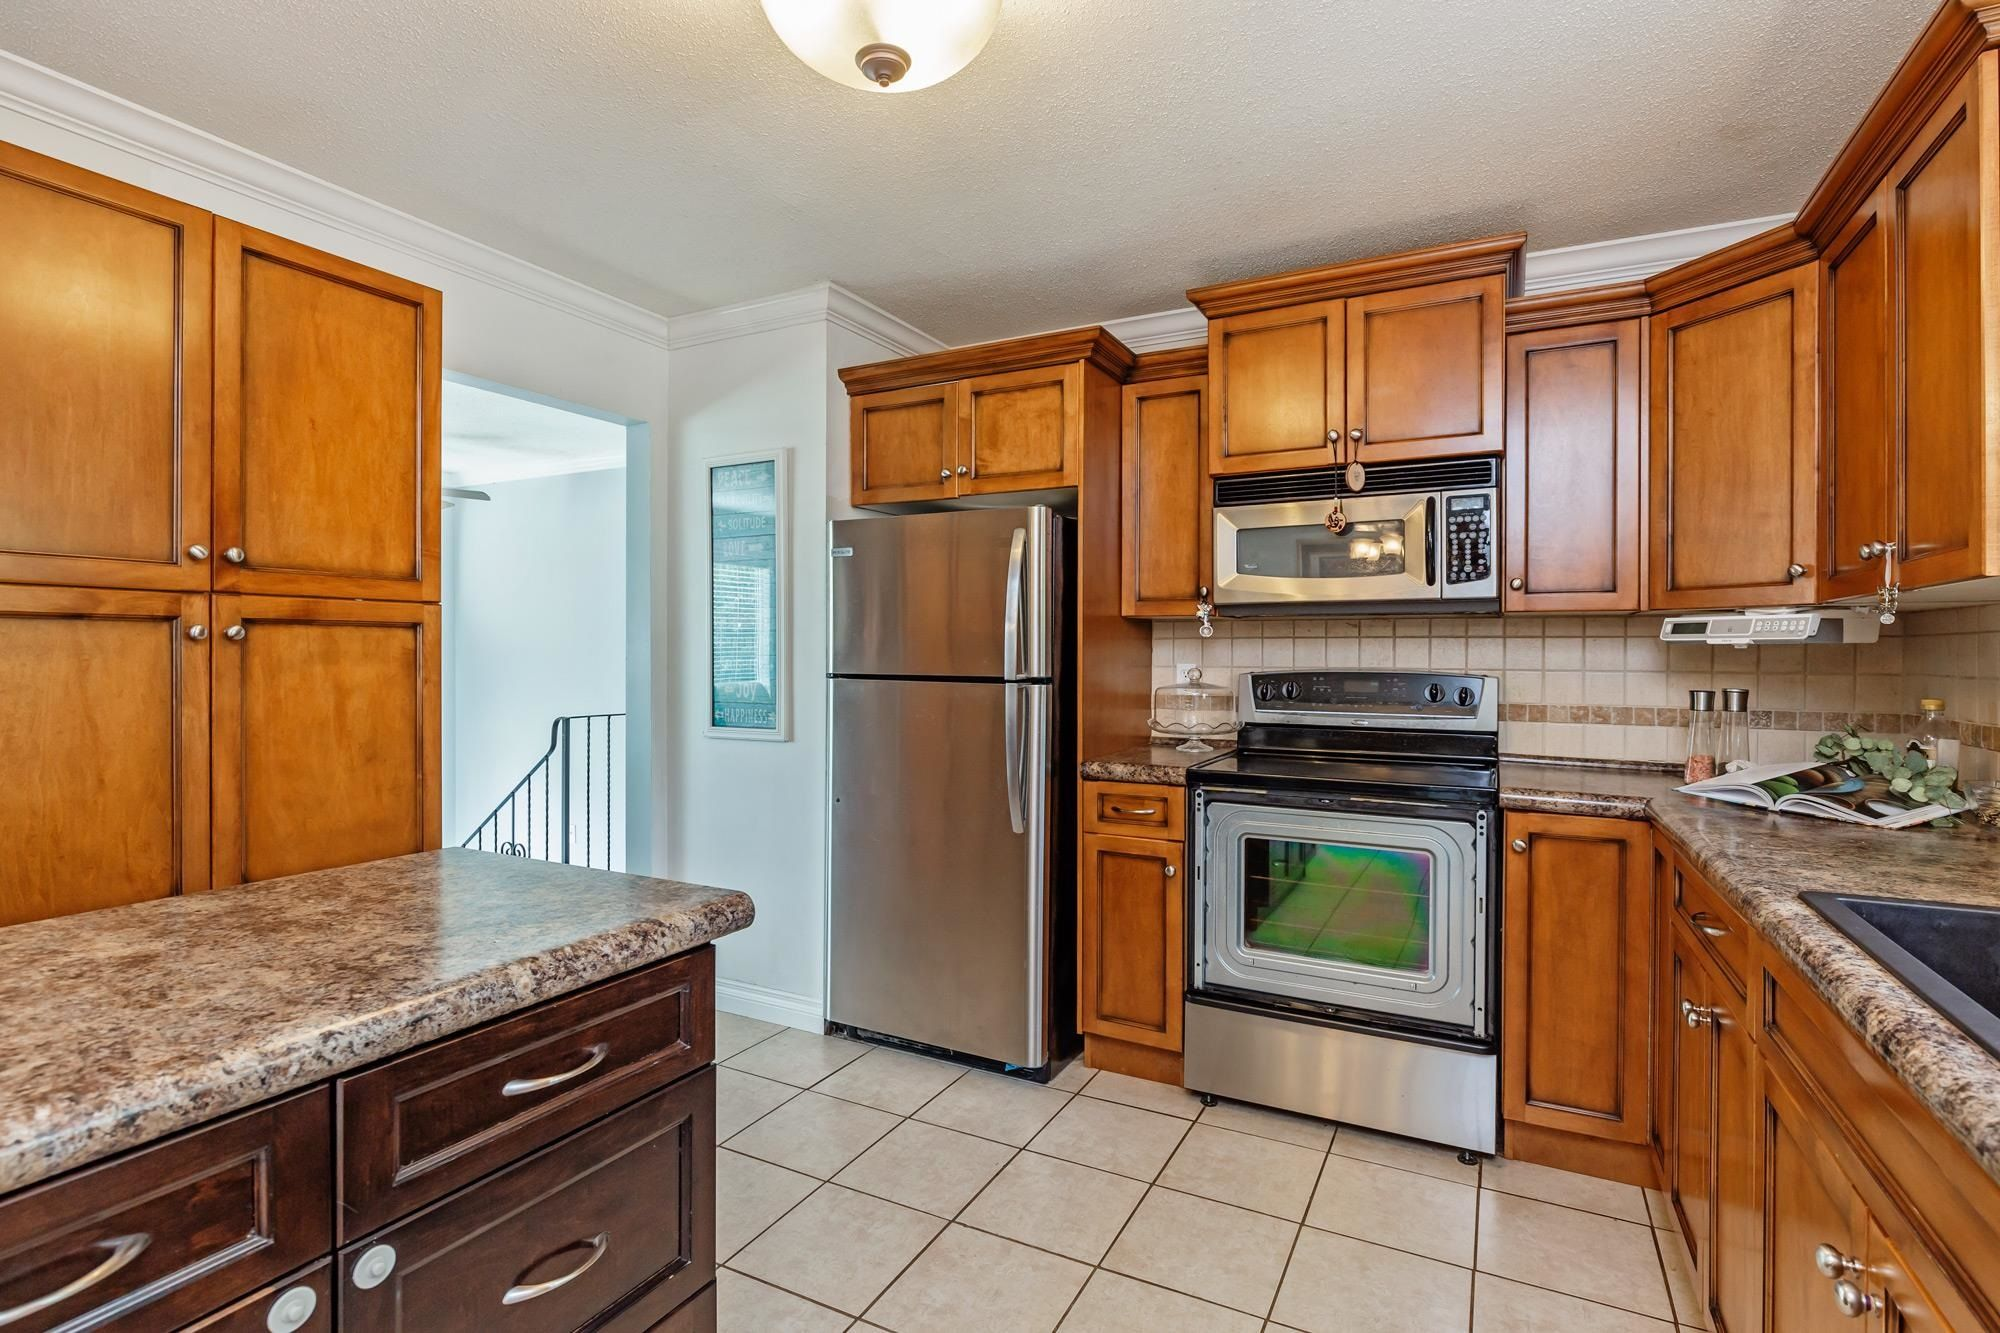 Photo 11: Photos: 32319 ATWATER Crescent in Abbotsford: Abbotsford West House for sale : MLS®# R2609136